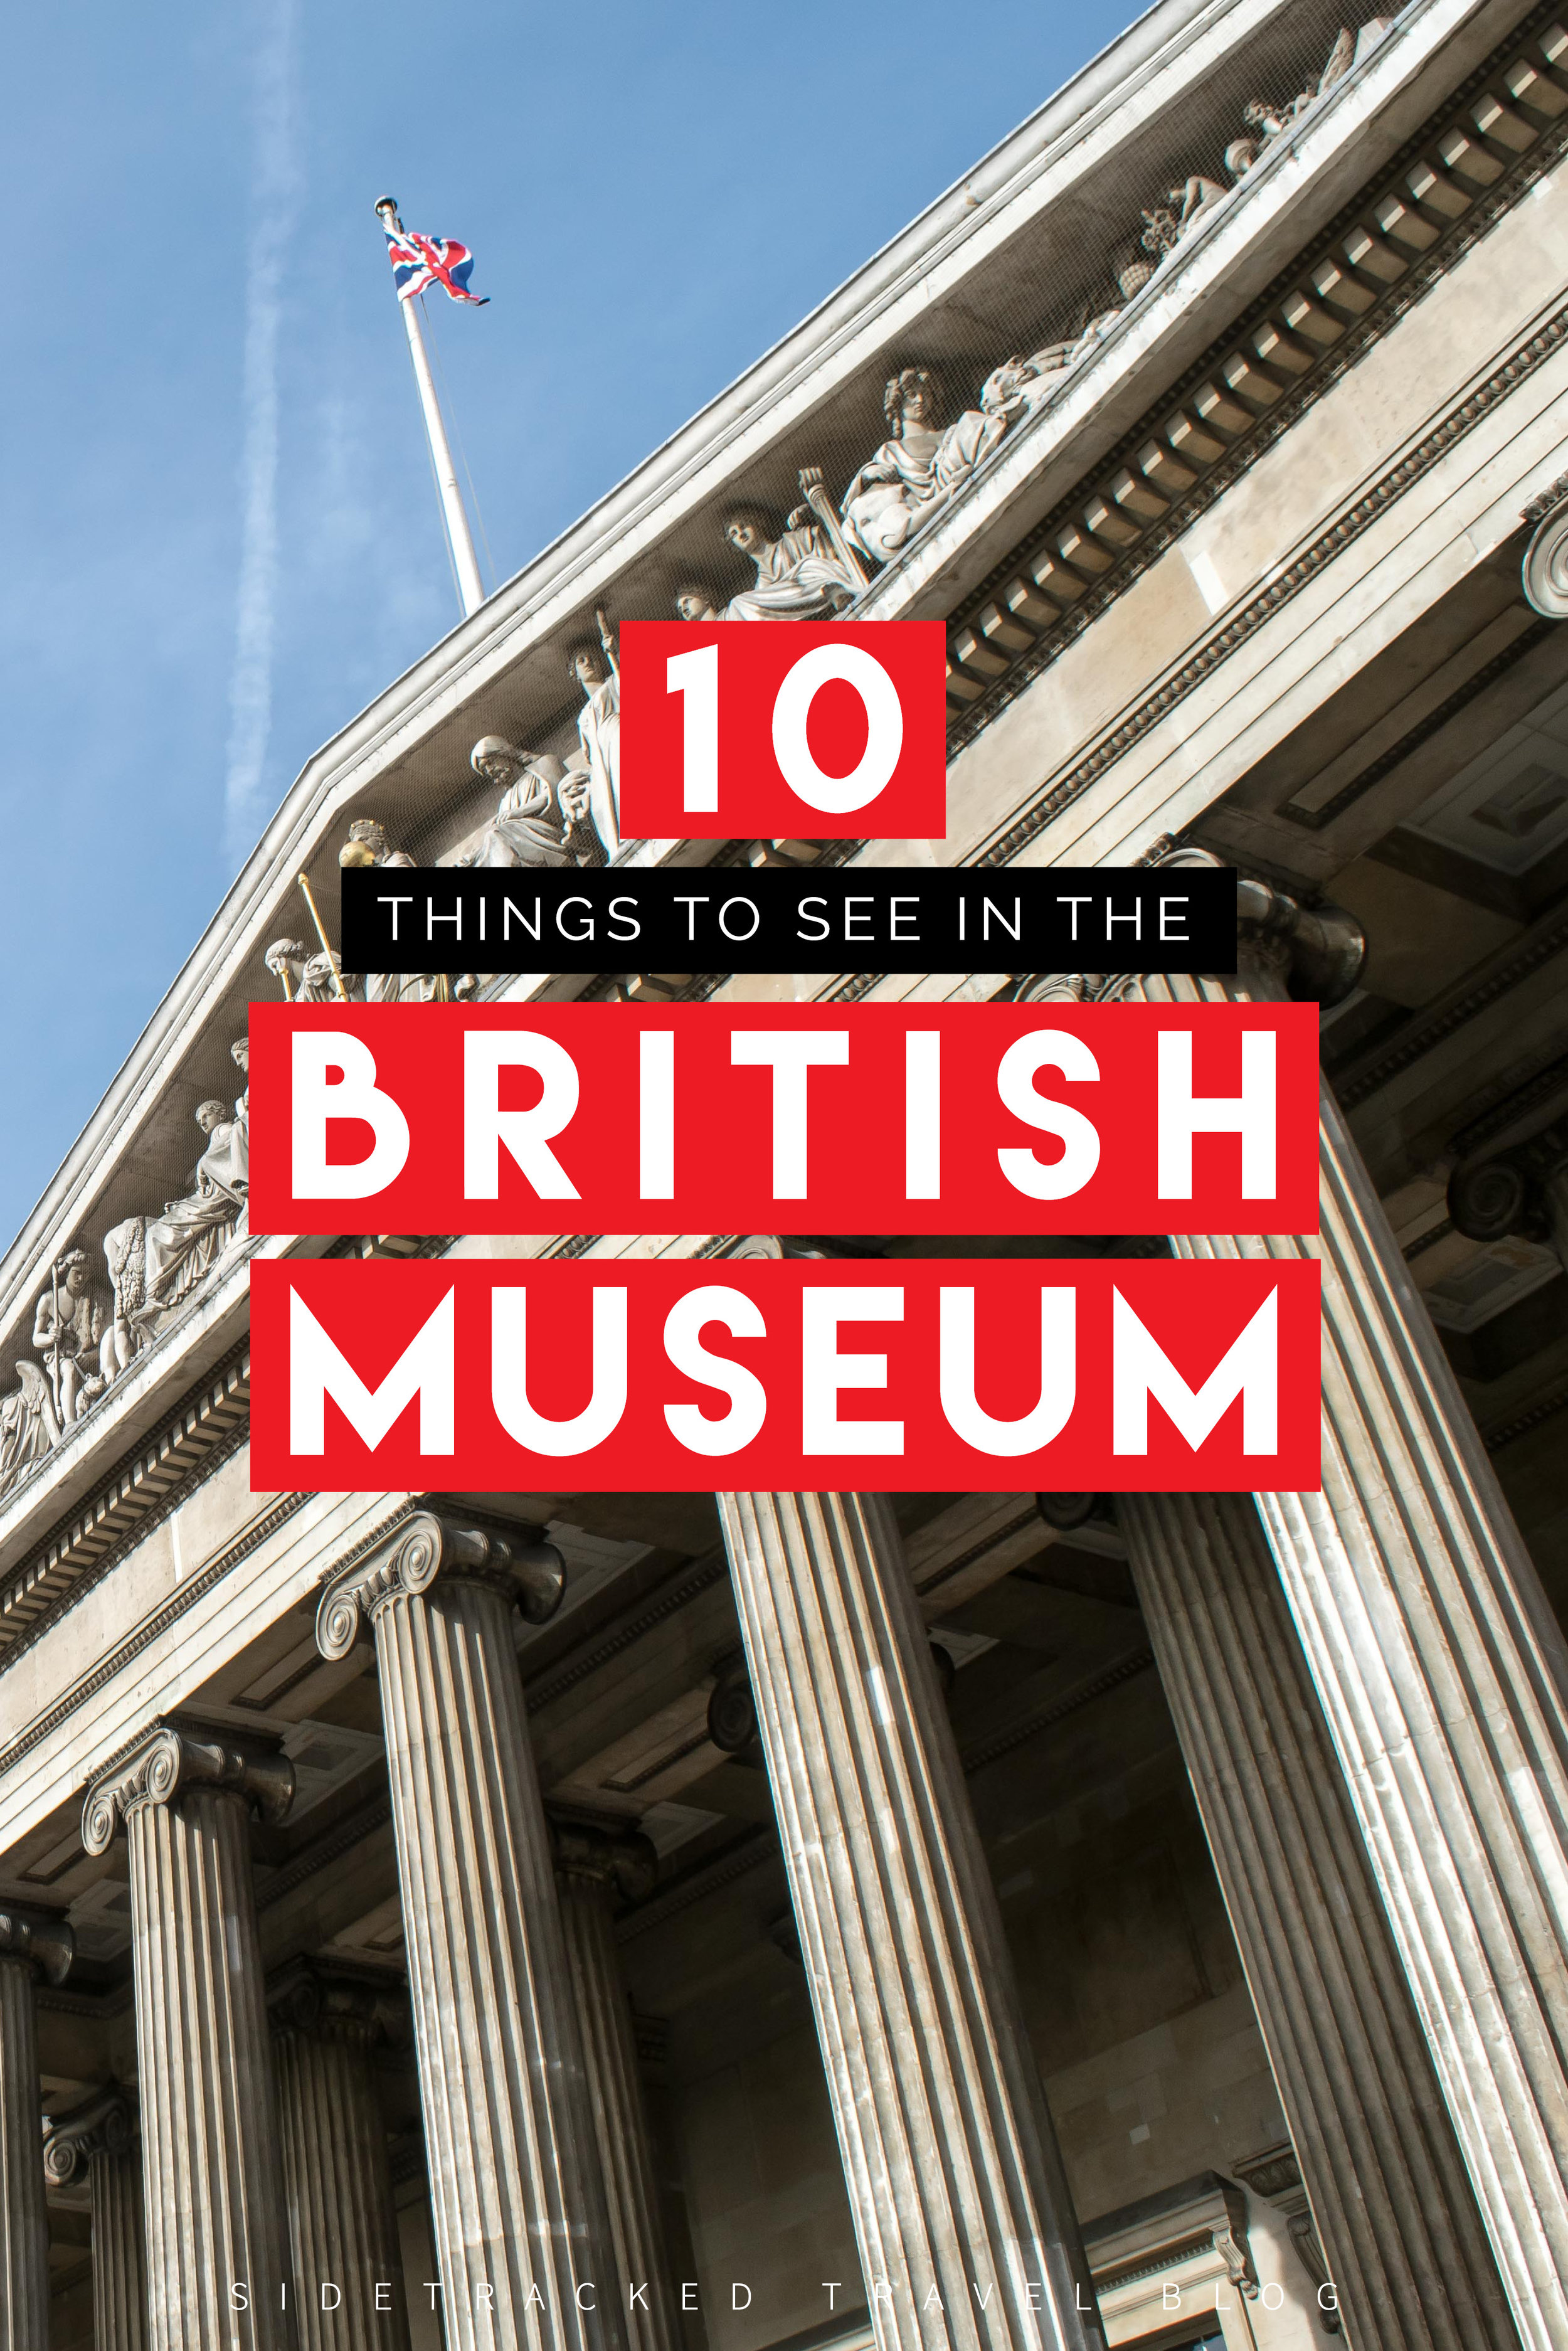 While you could literally spend days upon days exploring every nook and cranny of the impressive British Museum, listed below you'll find 10 things worth seeing that will make even the shortest of visits unforgettable.